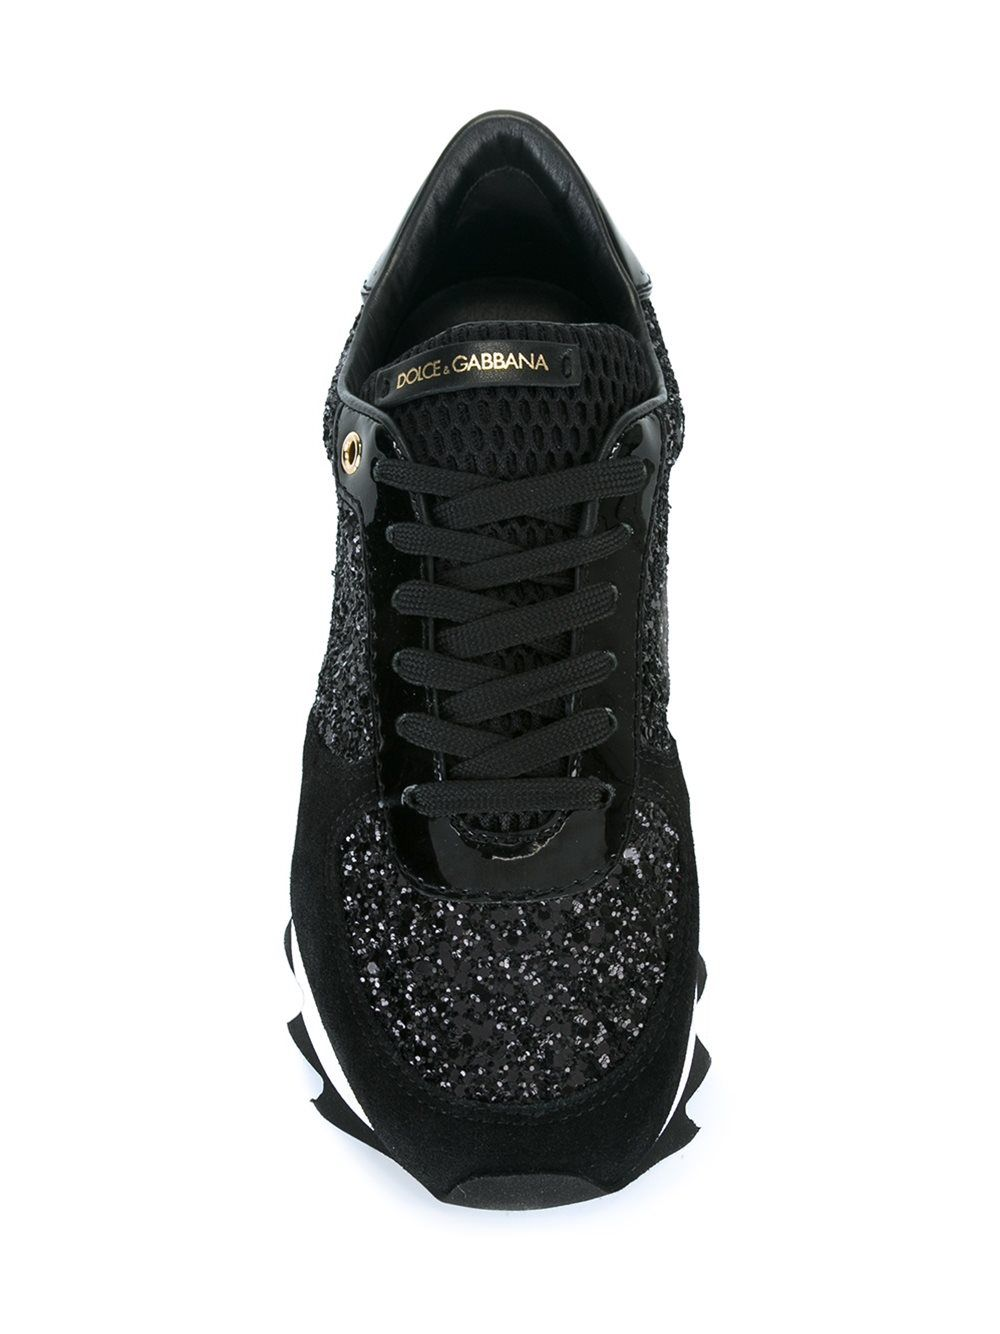 Womens shoes sneakers, Glitter sneakers